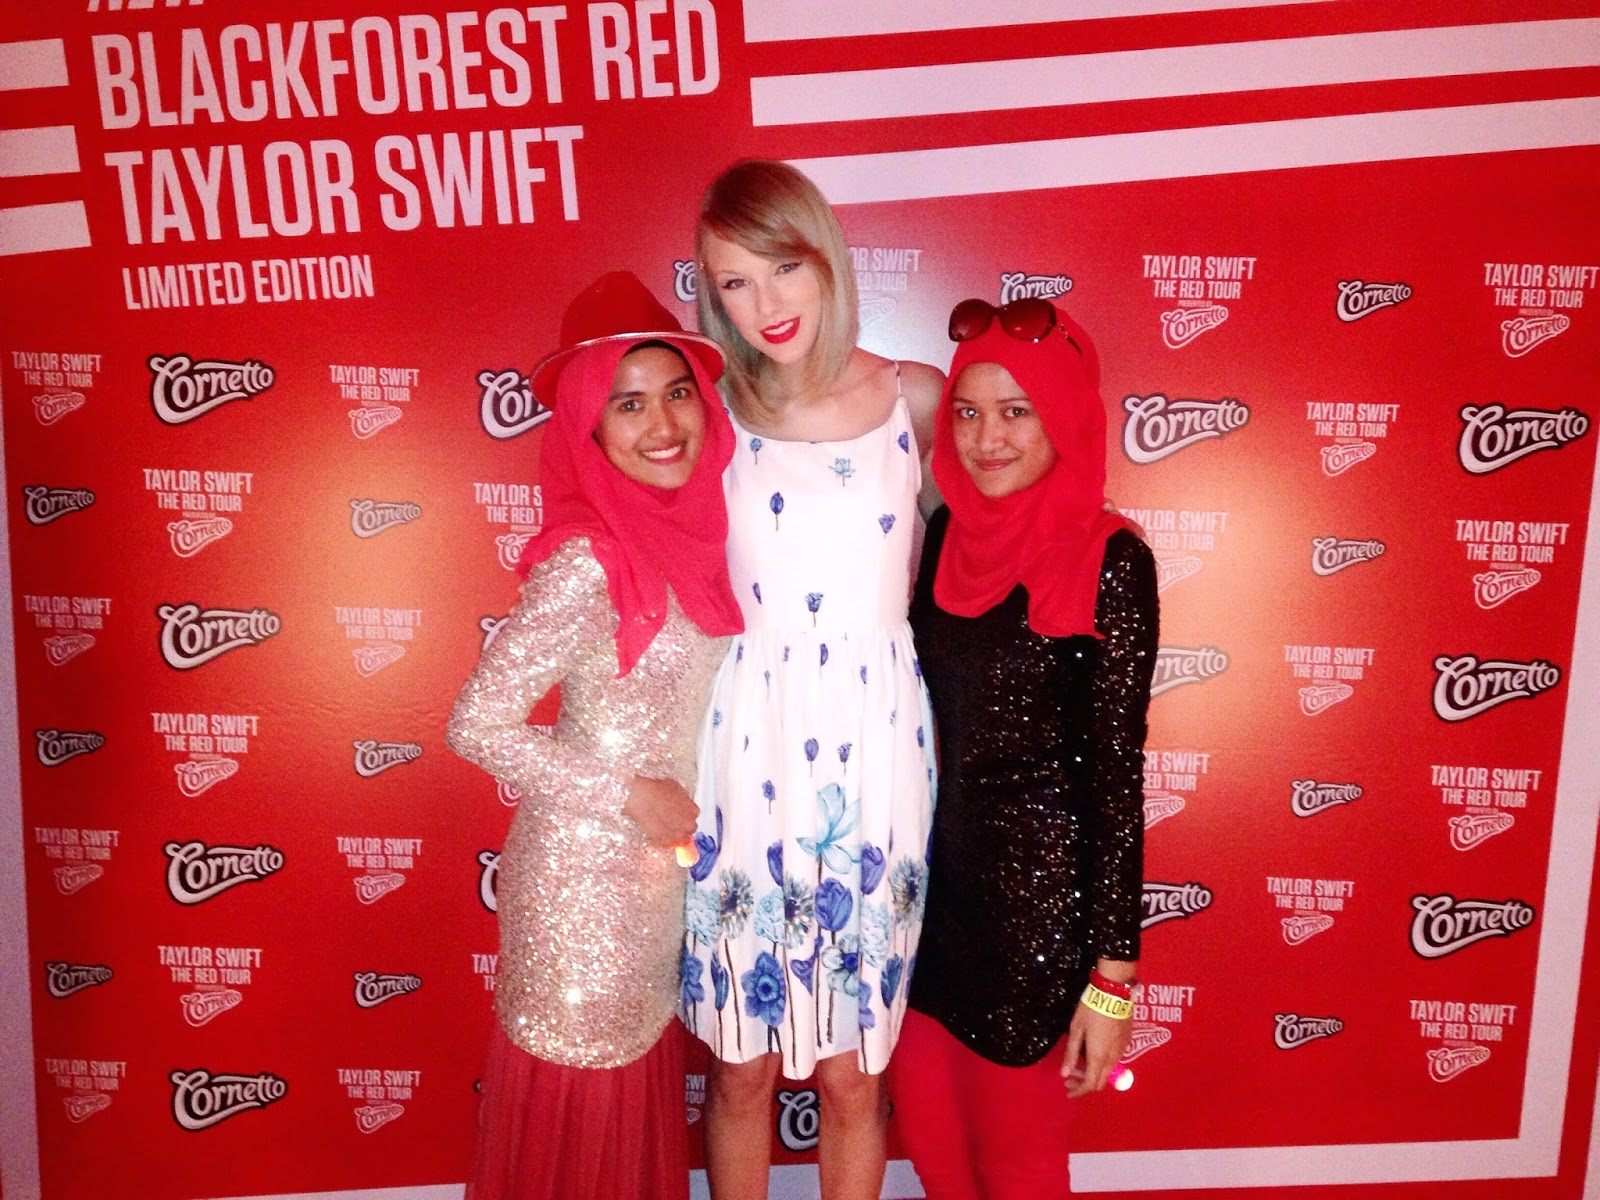 Stylebook by syahira zakaria taylor swift red tour asia she my sister then added that we got married at 20 taylor thanked me for that when really i felt like i should thank her for making such a beautiful song kristyandbryce Gallery